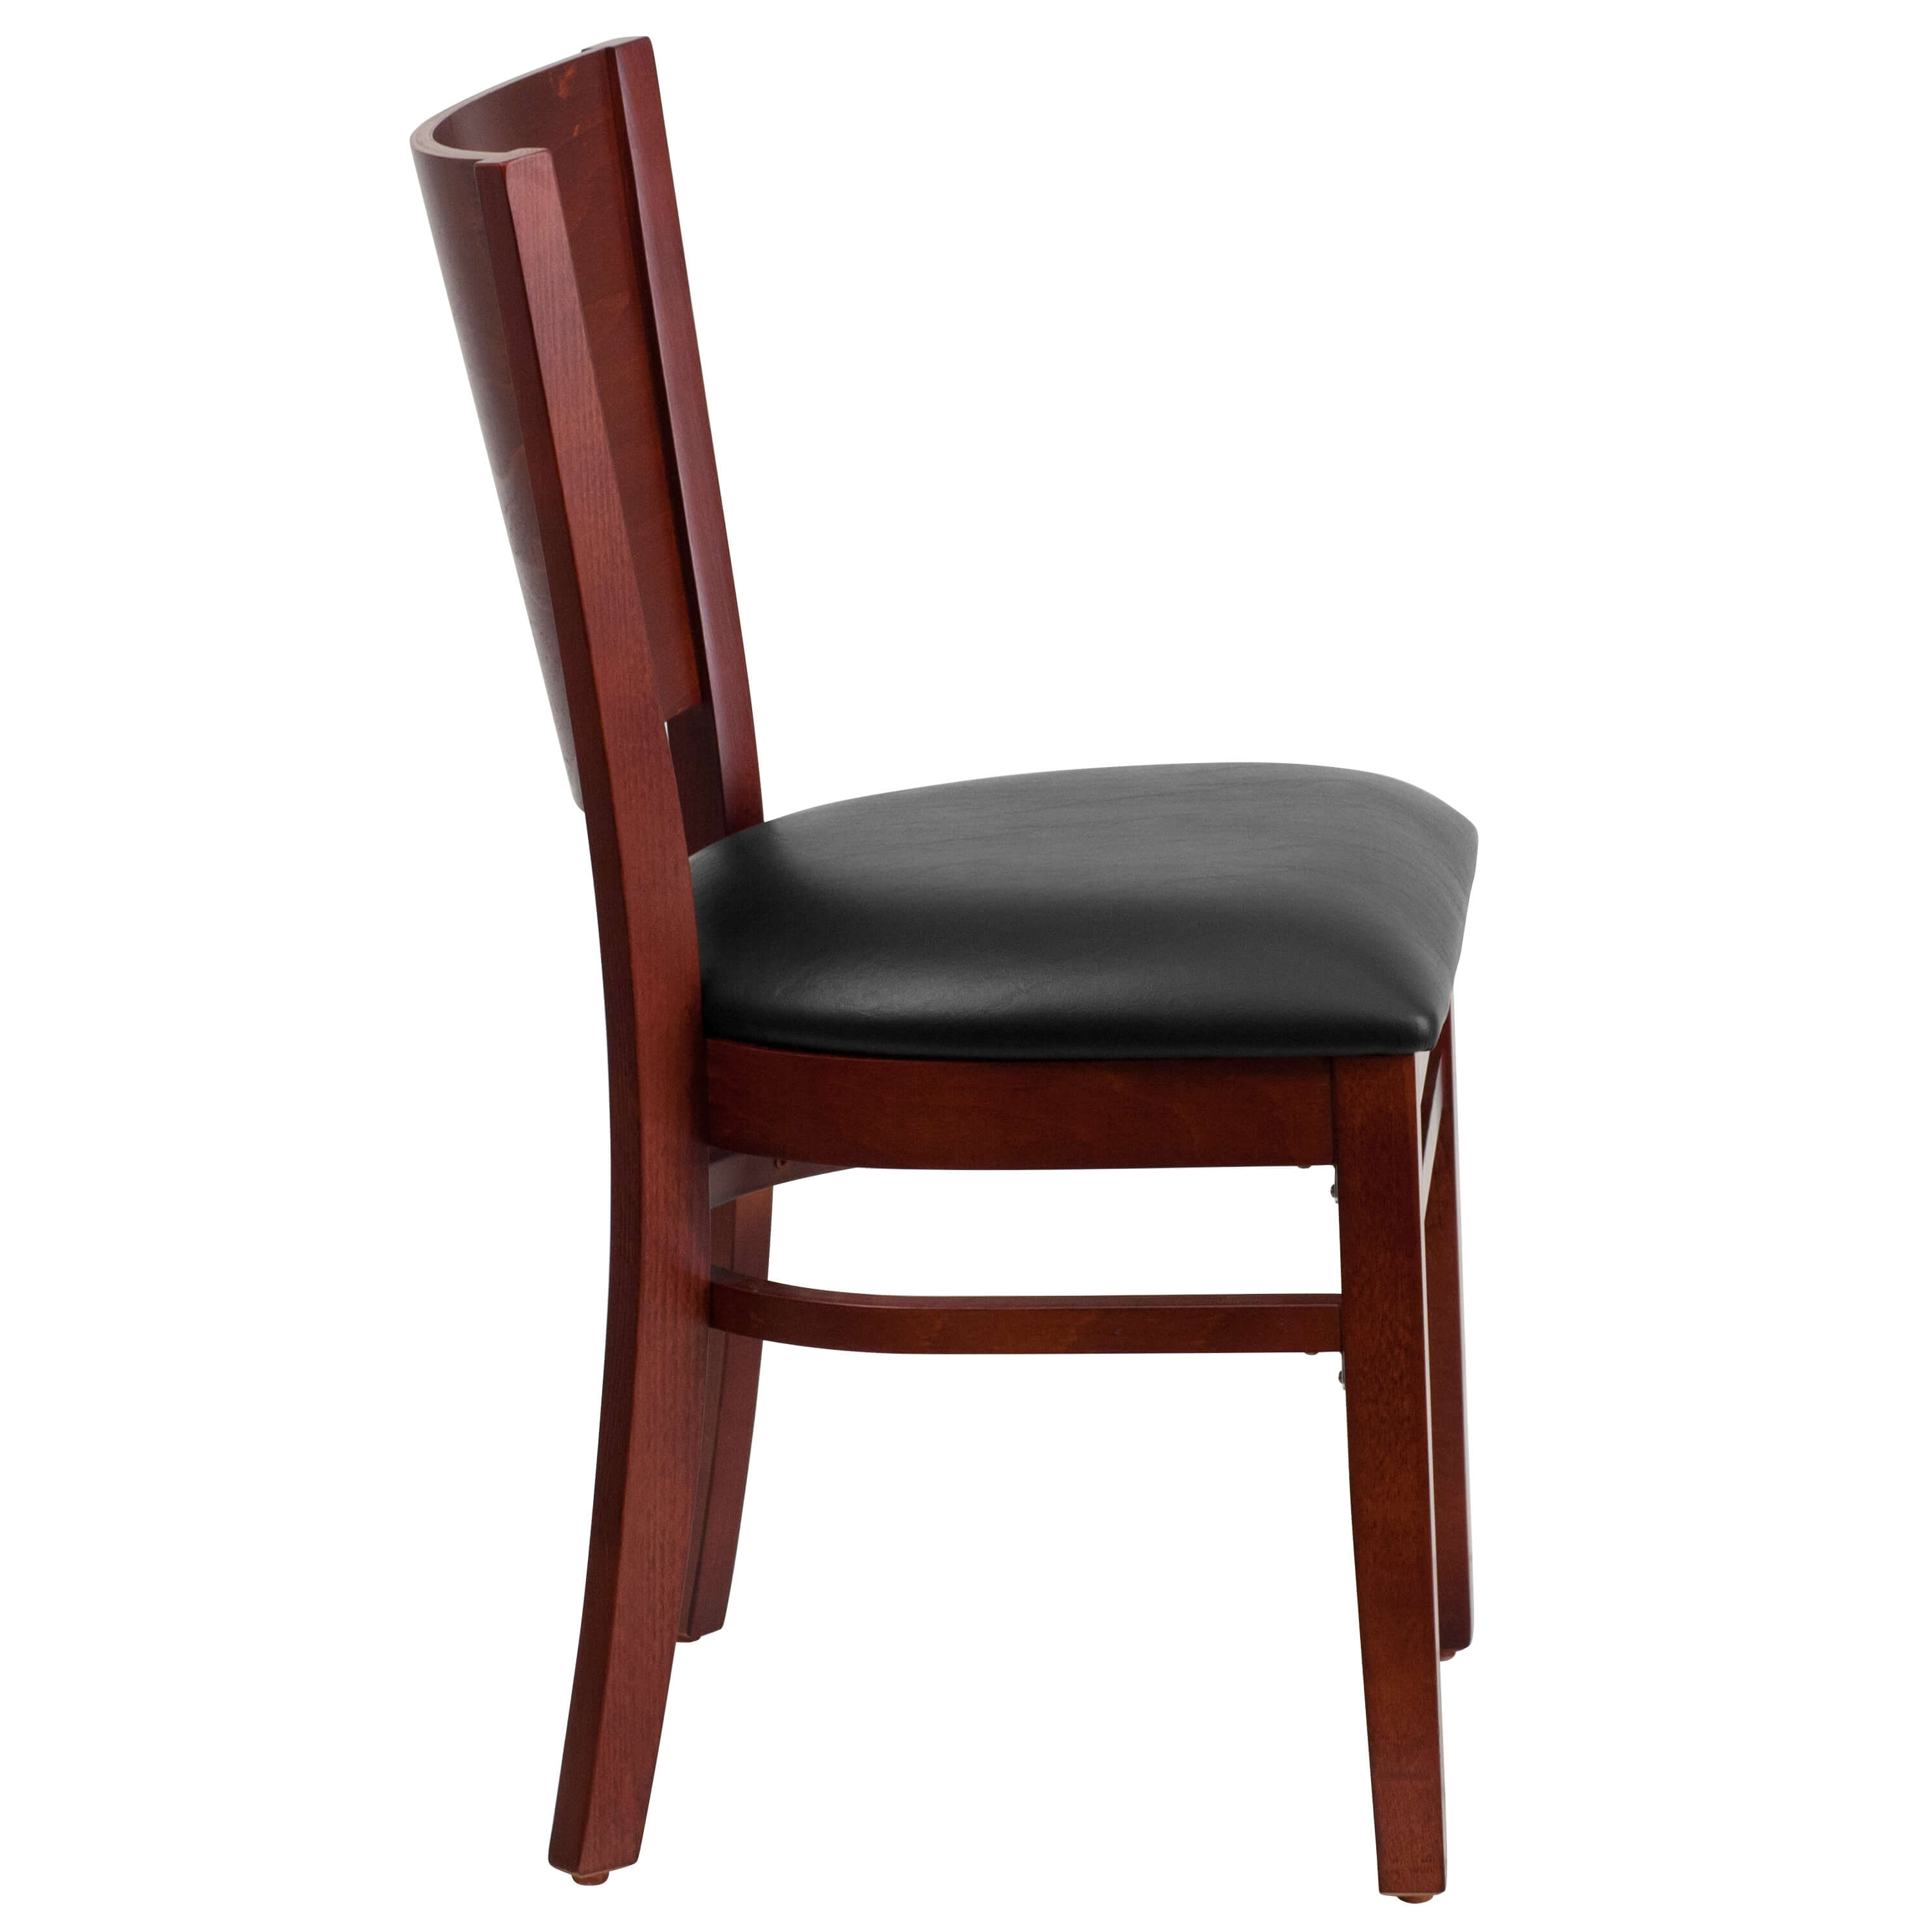 Solid wood dining chairs side view